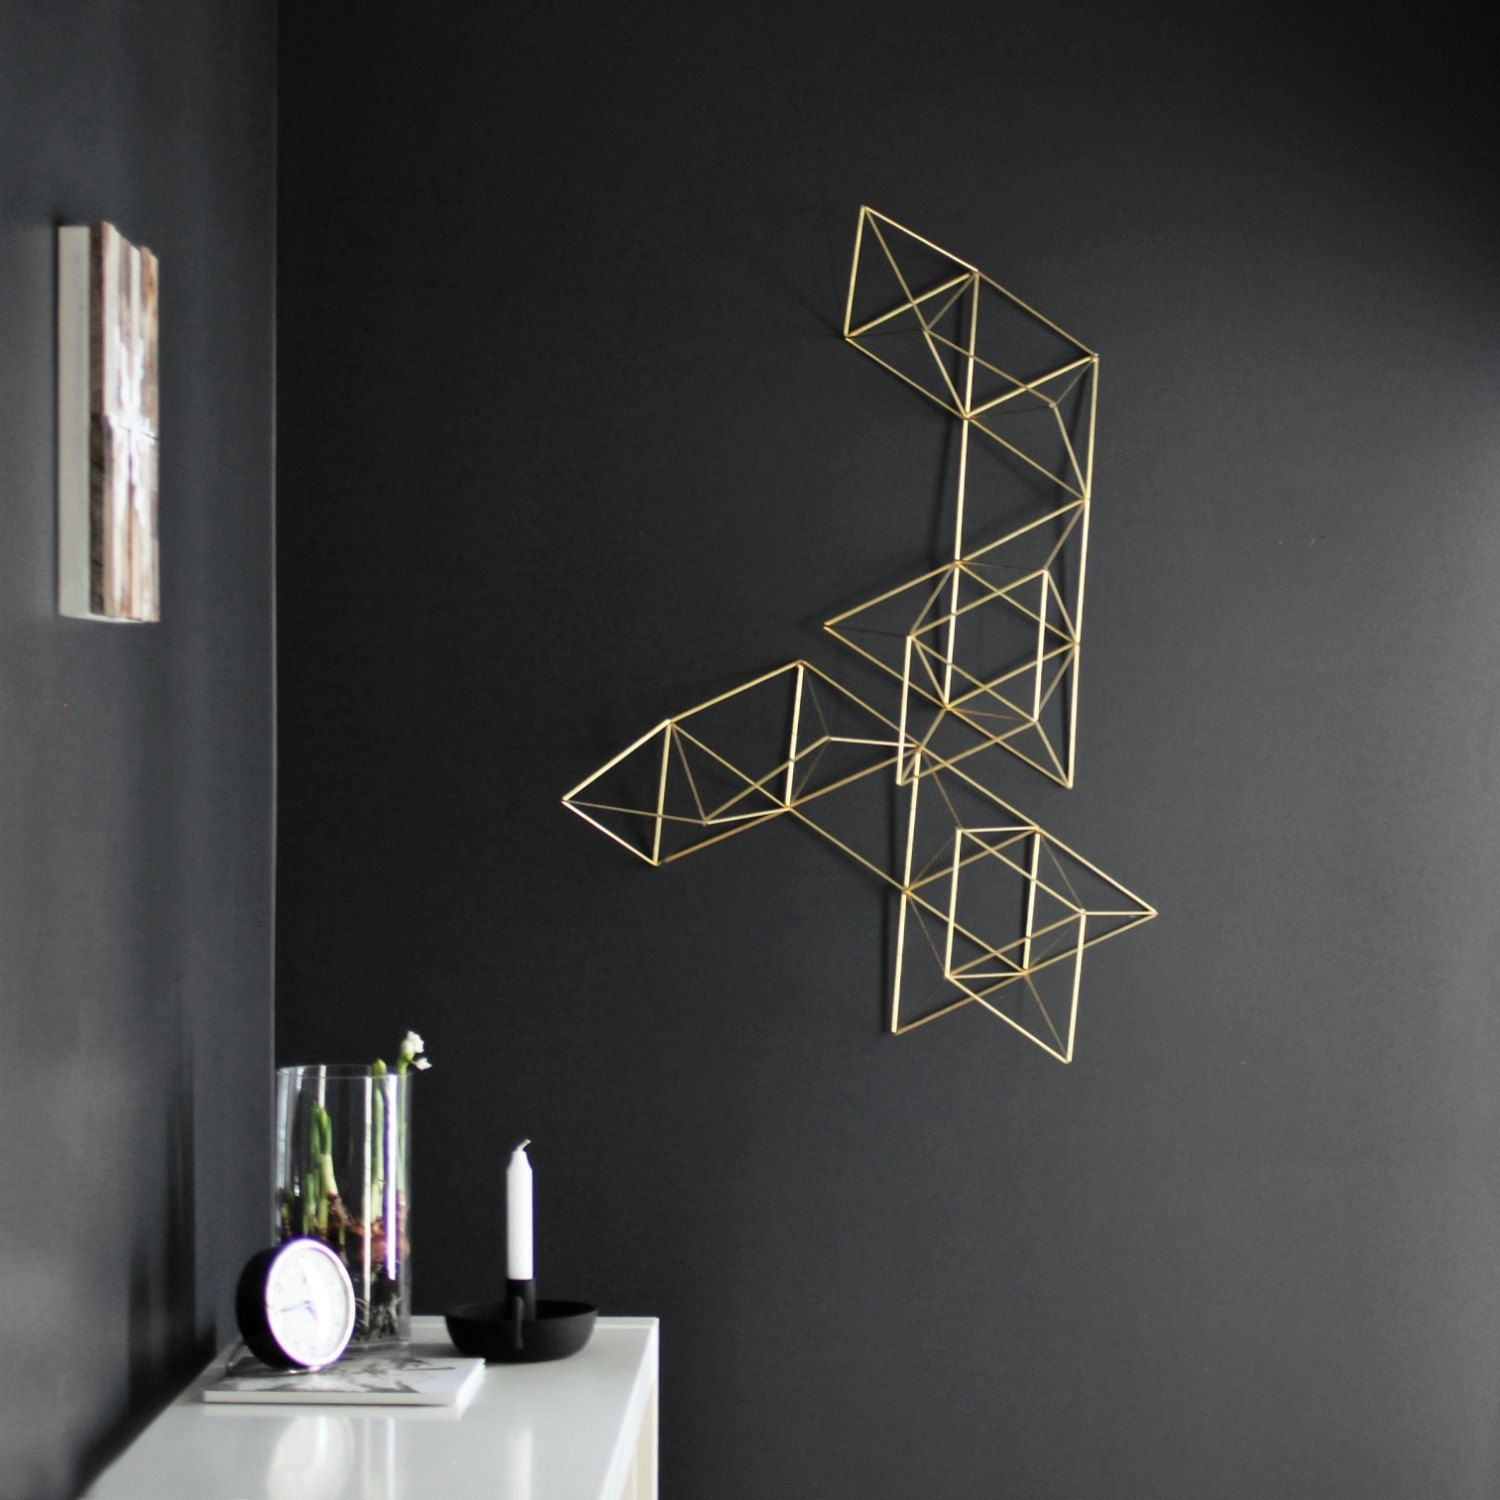 Lux – Large Abstract Wall Sculpture – Geometric Art – Himmeli In Most Recently Released Geometric Modern Metal Abstract Wall Art (View 11 of 20)